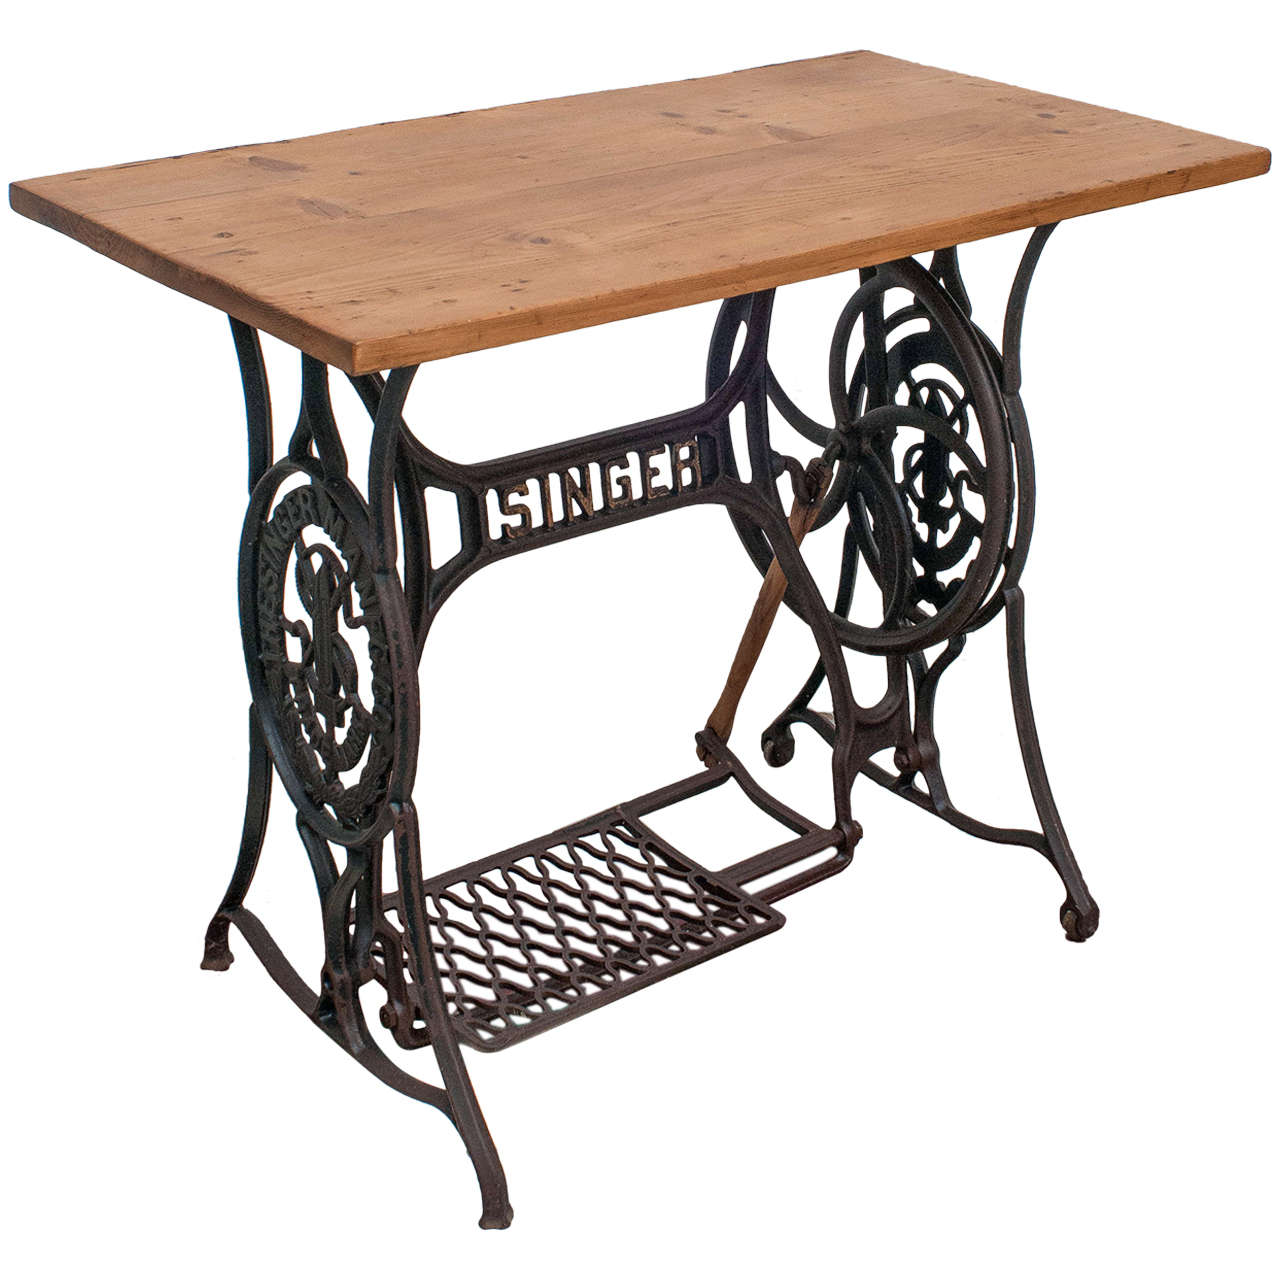 Sewing machine table at 1stdibs - Singer sewing machine table ...